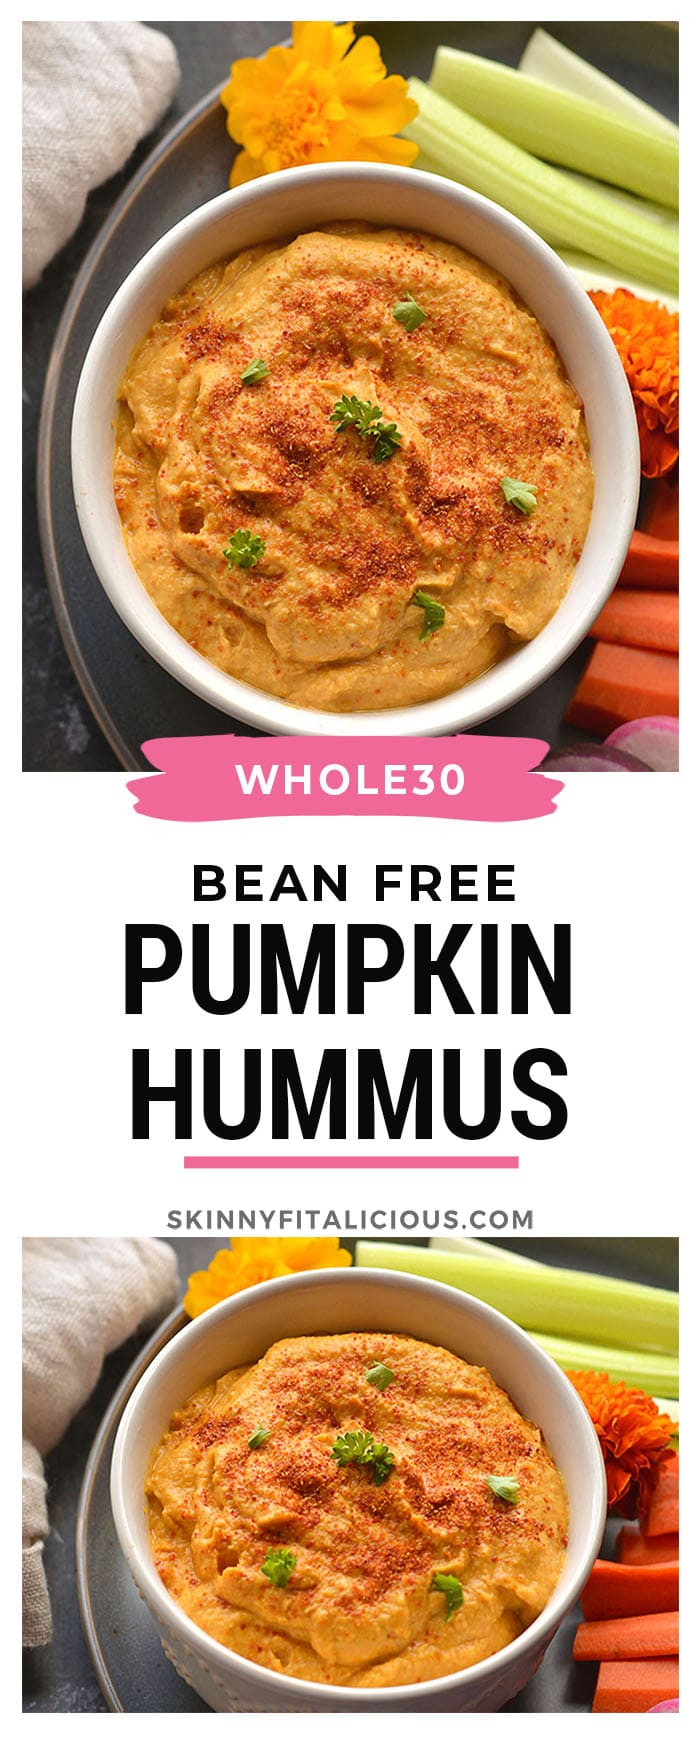 """Whole30 No Bean Pumpkin Hummus!This thick and creamy """"hummus"""" is made with zucchini and pumpkin instead of chickpeas. Adelicious, low calorie dip, dressing, sauce or marinade! Gluten Free + Vegan + Paleo + Low Calorie + Whole30"""